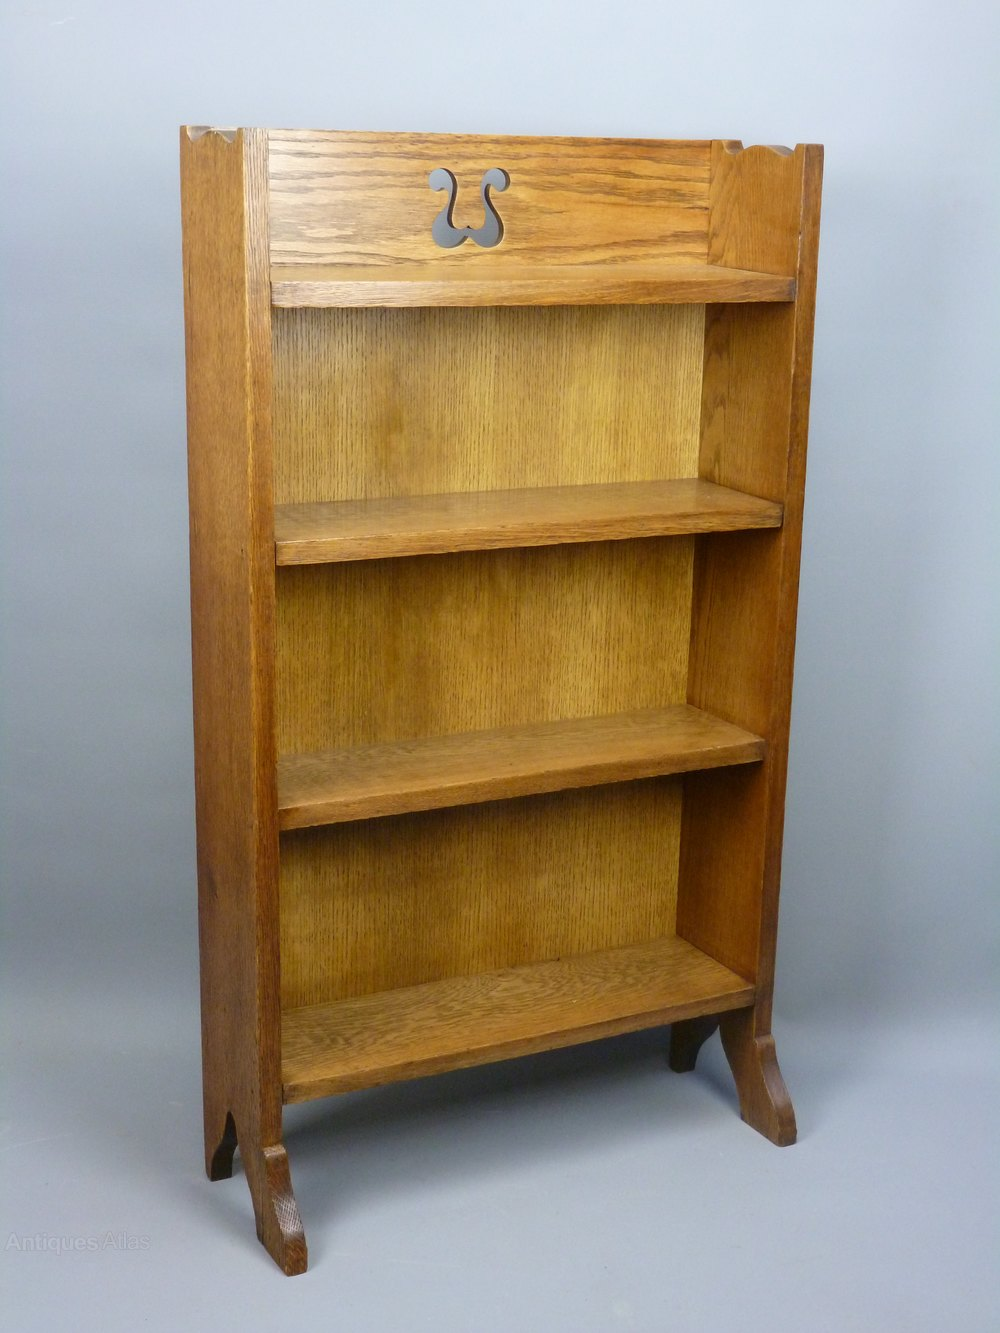 Arts and crafts oak bookcase c1910 antiques atlas for Arts and crafts bookshelf